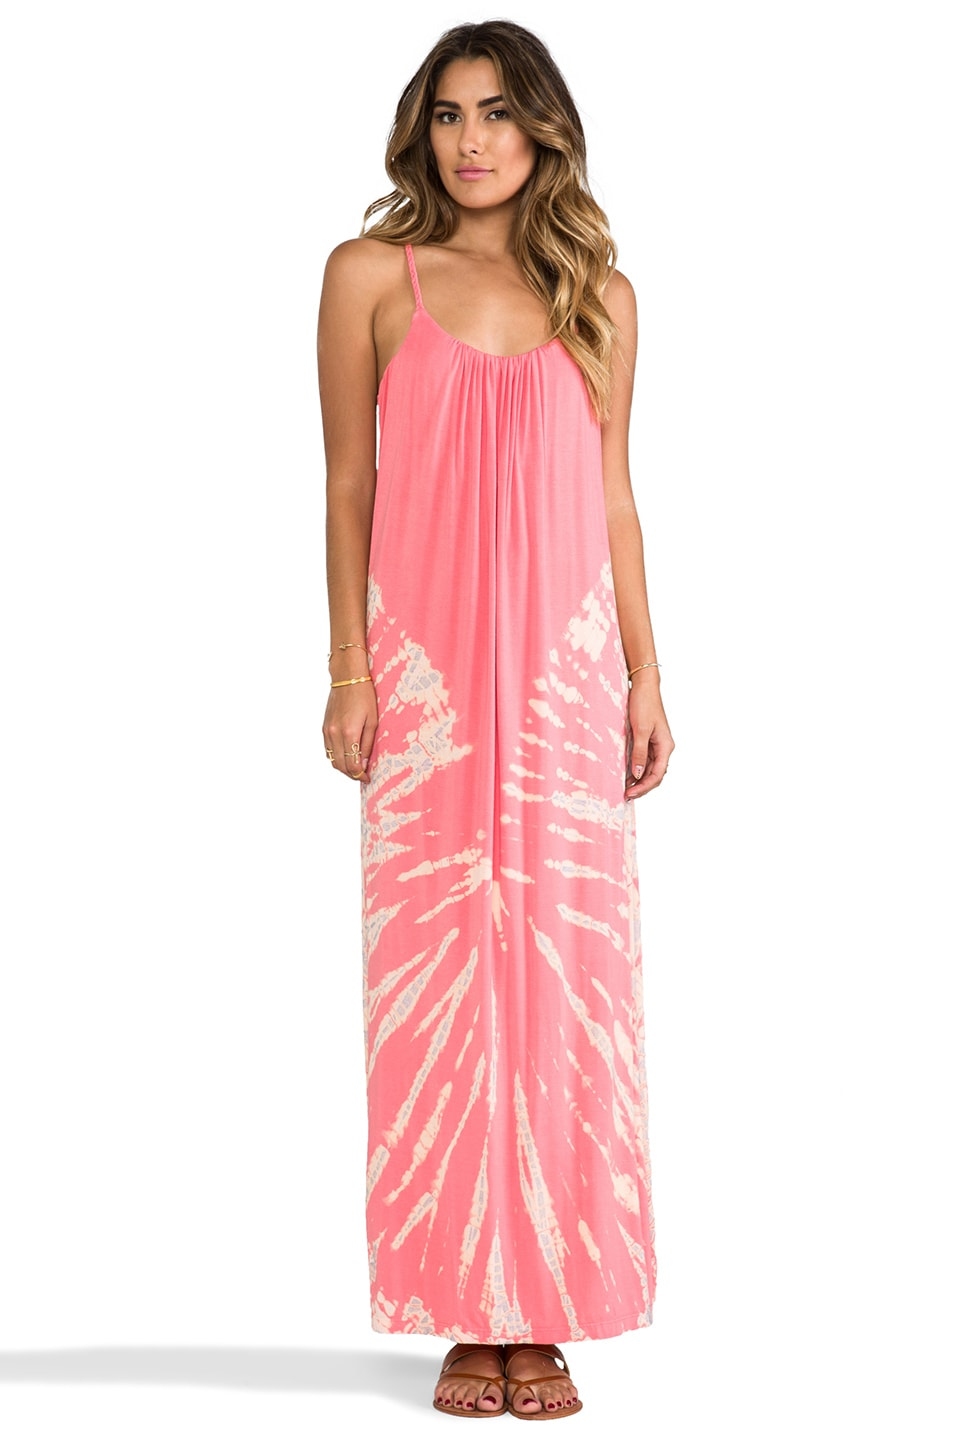 Gypsy 05 Spaghetti Maxi Dress in Salmon